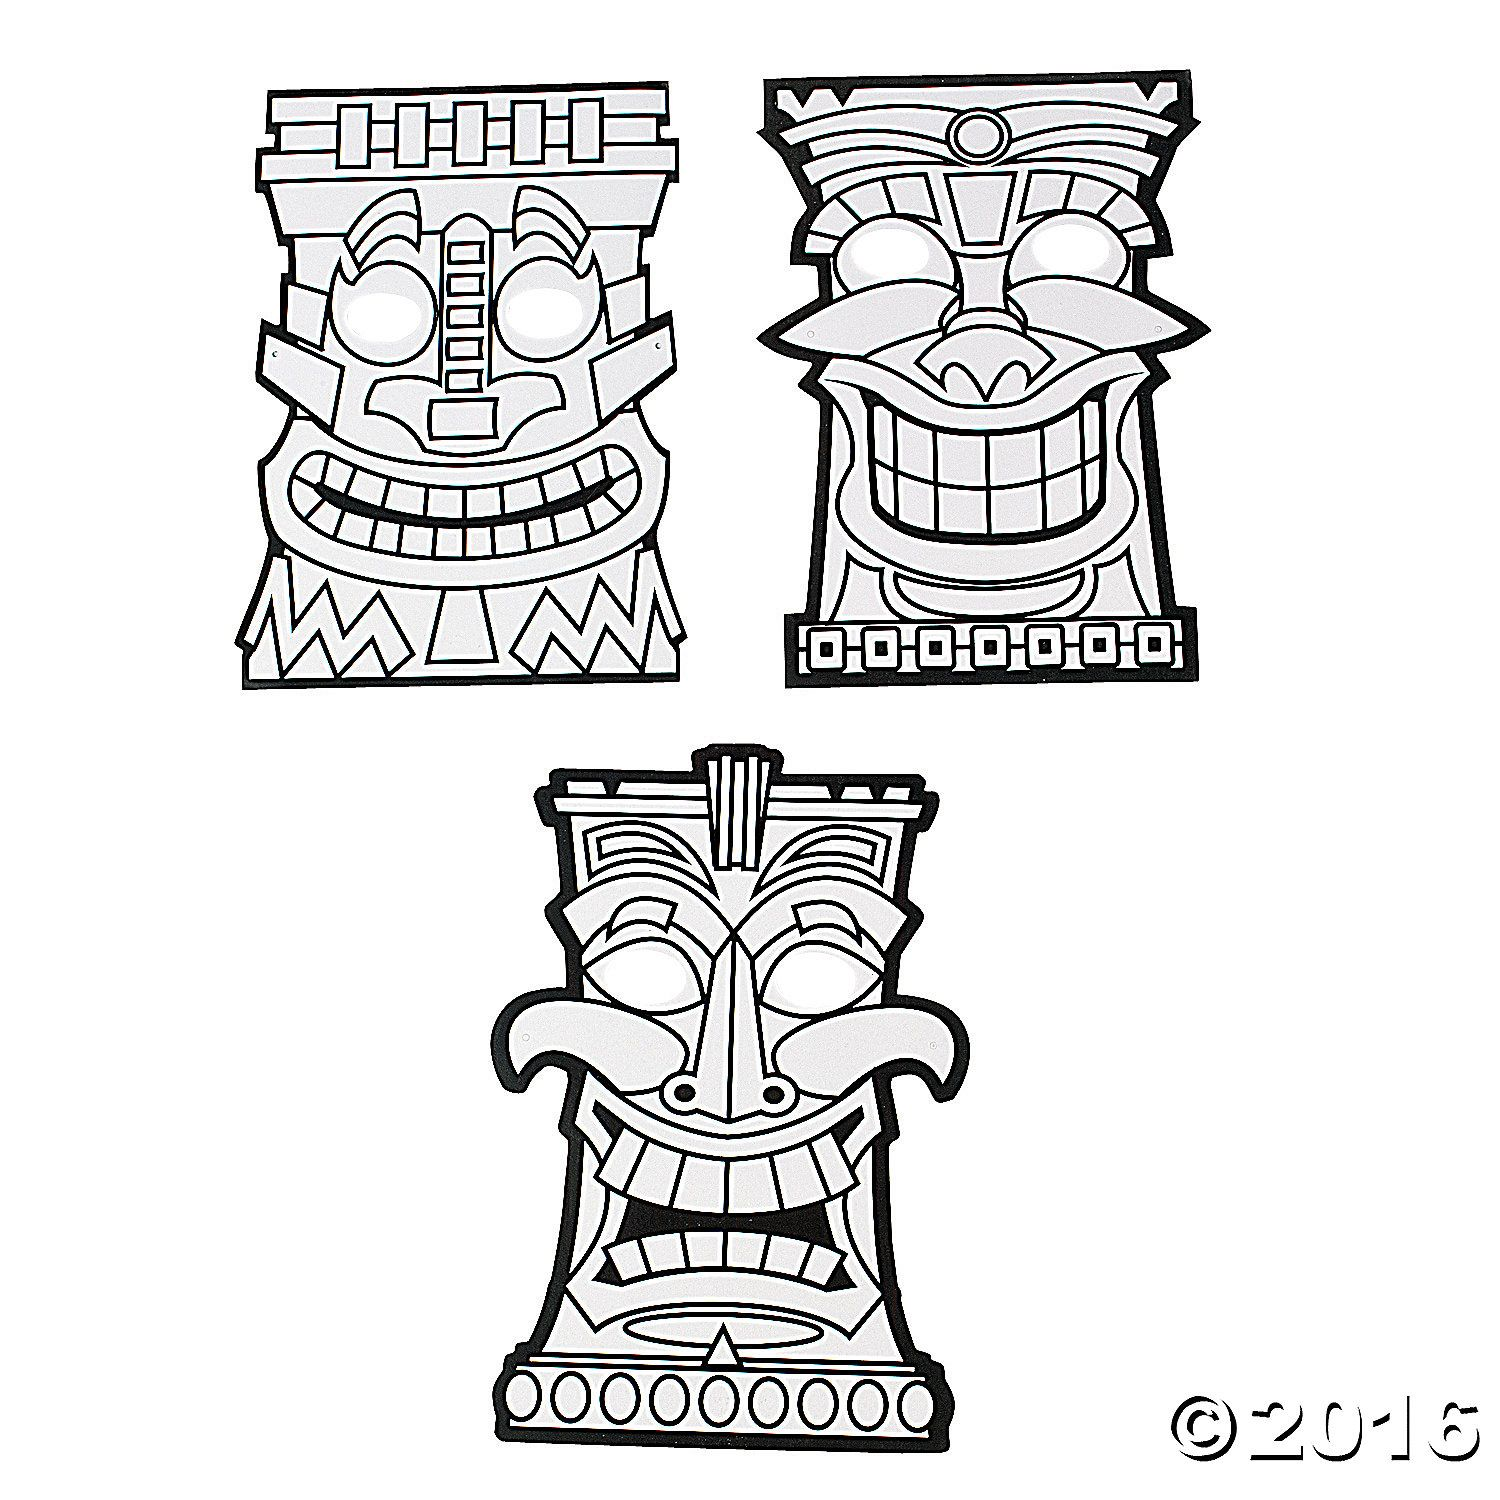 Tiki totems coloring clipart clip art black and white stock Tiki Mask Coloring Pages | tiki coloring pages | Tiki mask ... clip art black and white stock